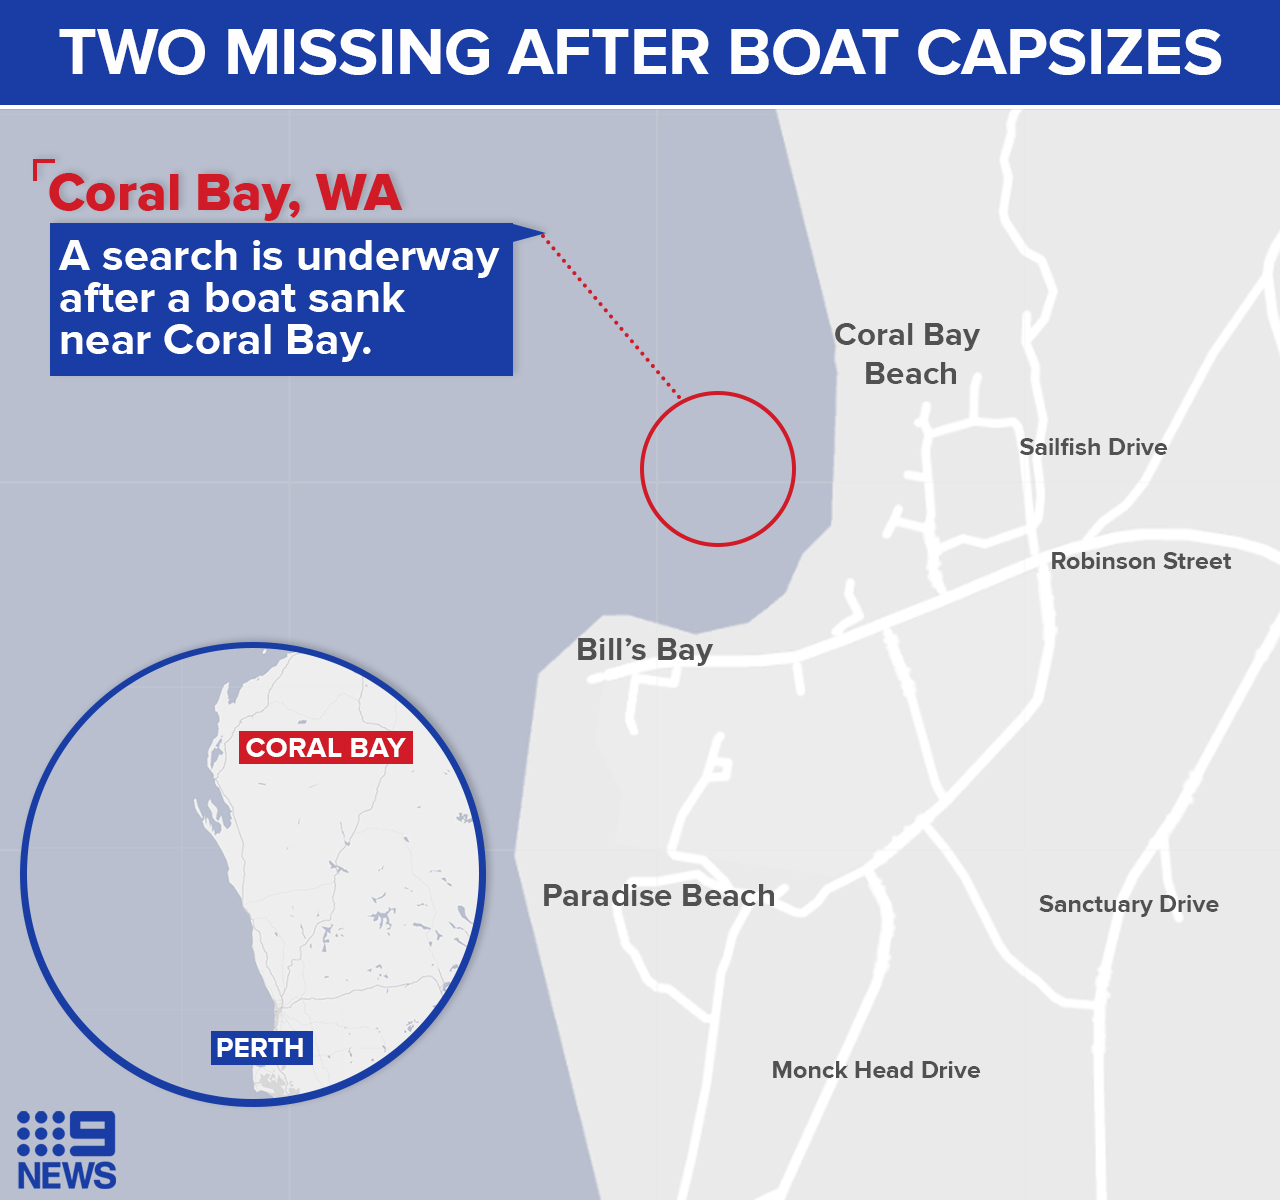 Coral Bay boat capsize two missing